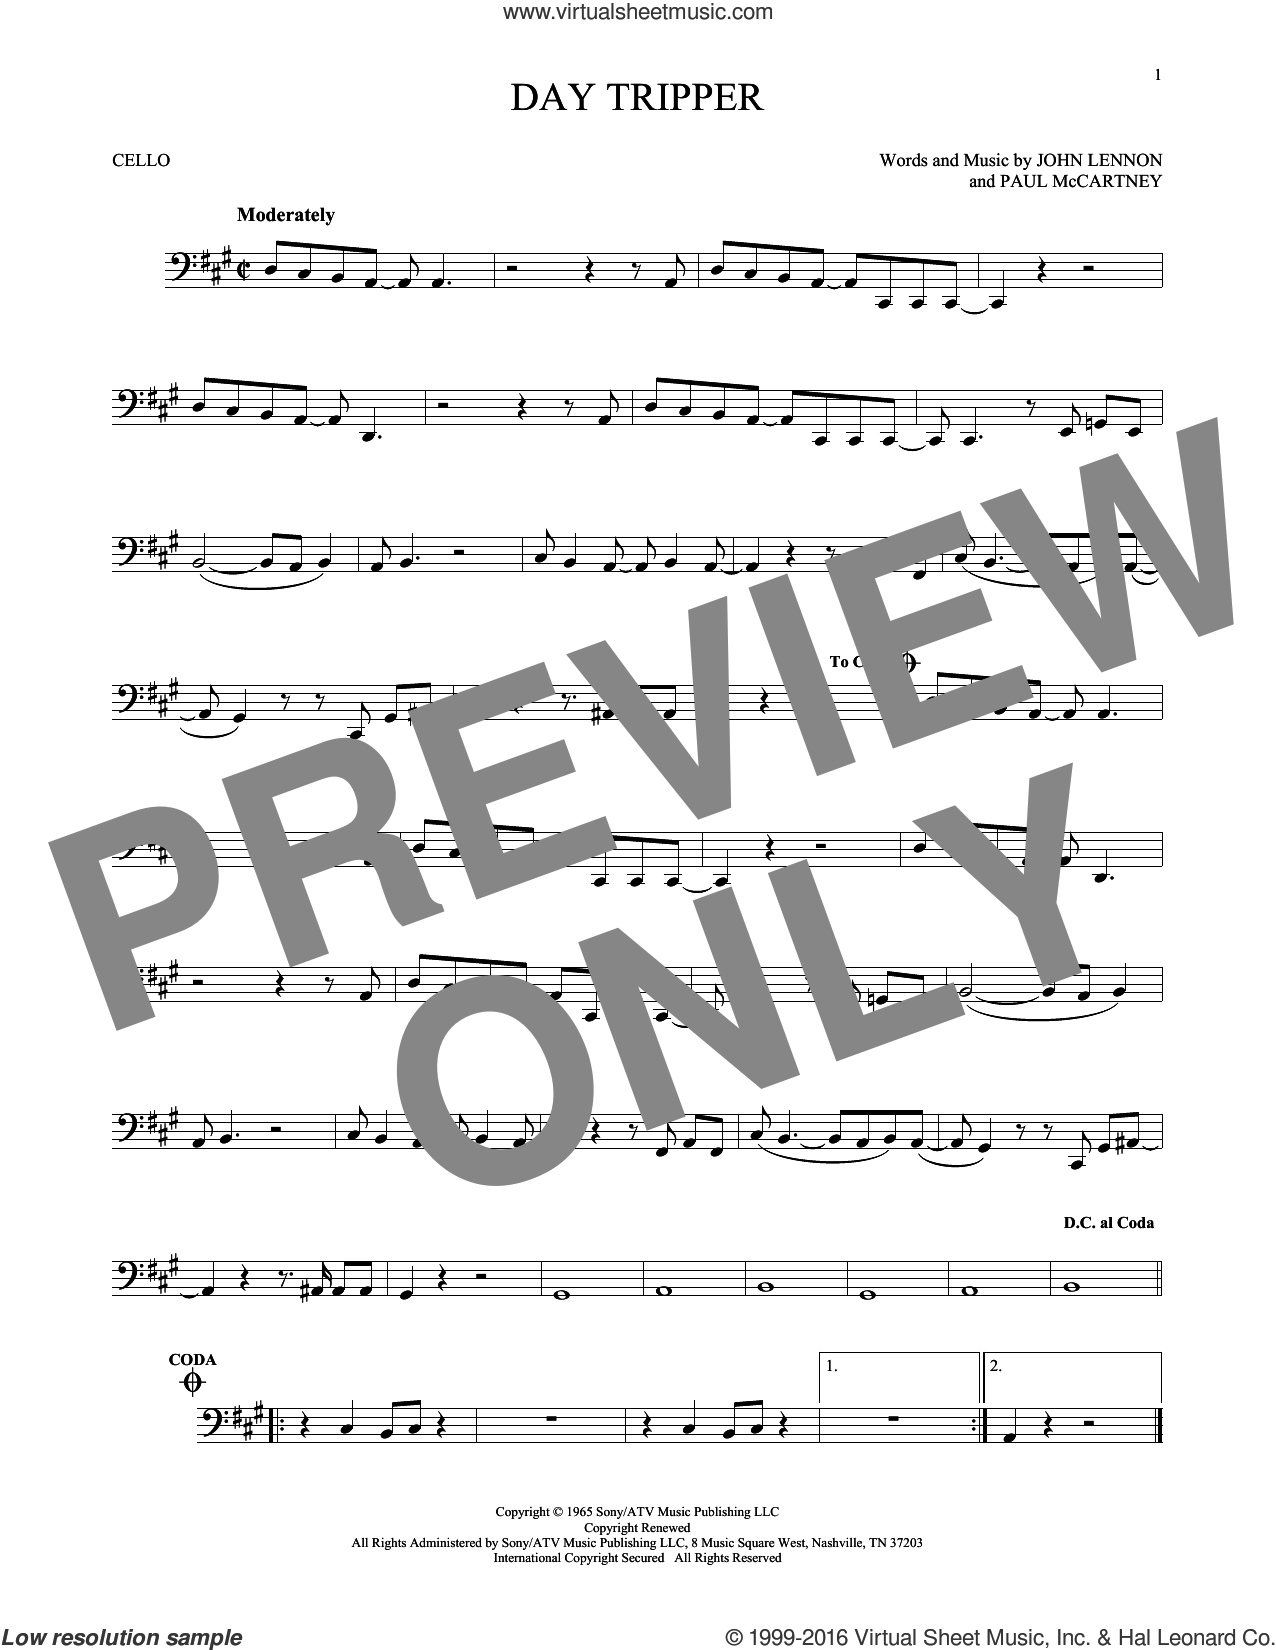 Day Tripper sheet music for cello solo by The Beatles, John Lennon and Paul McCartney, intermediate skill level